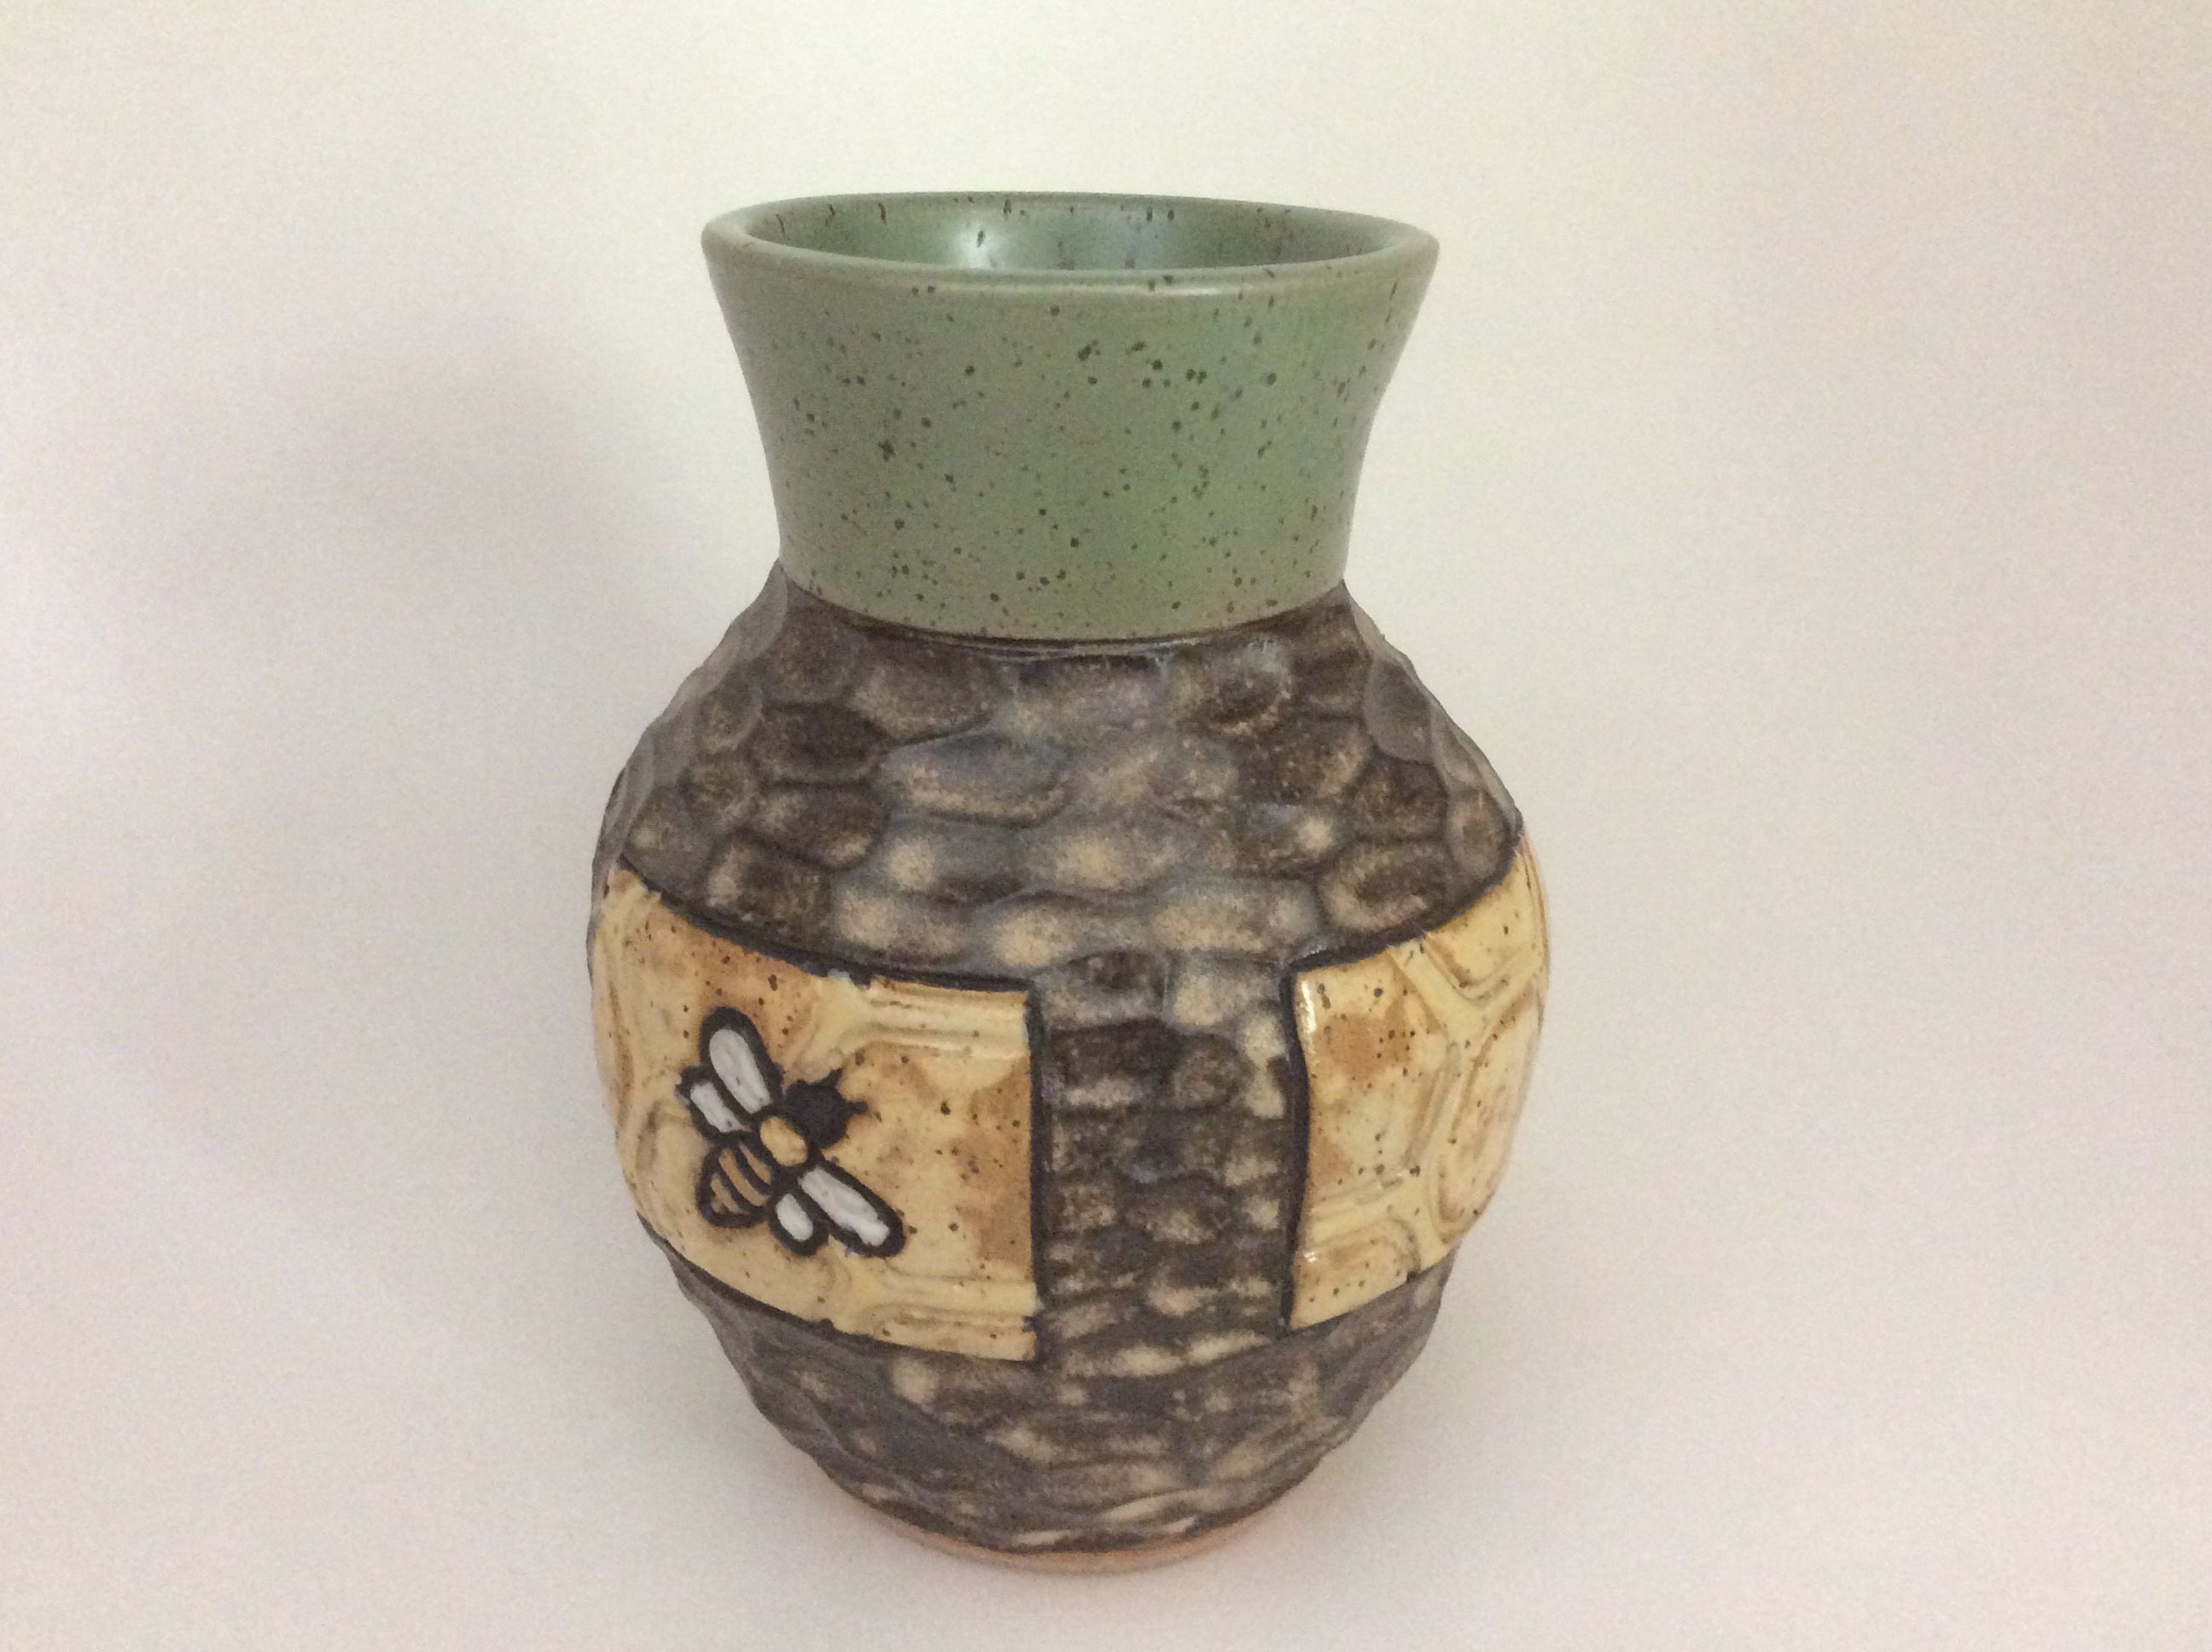 pottery vase designs of pin by julie calhoun roepnack on jcr designs arts and crafts pottery inside design art vase flower vases jar